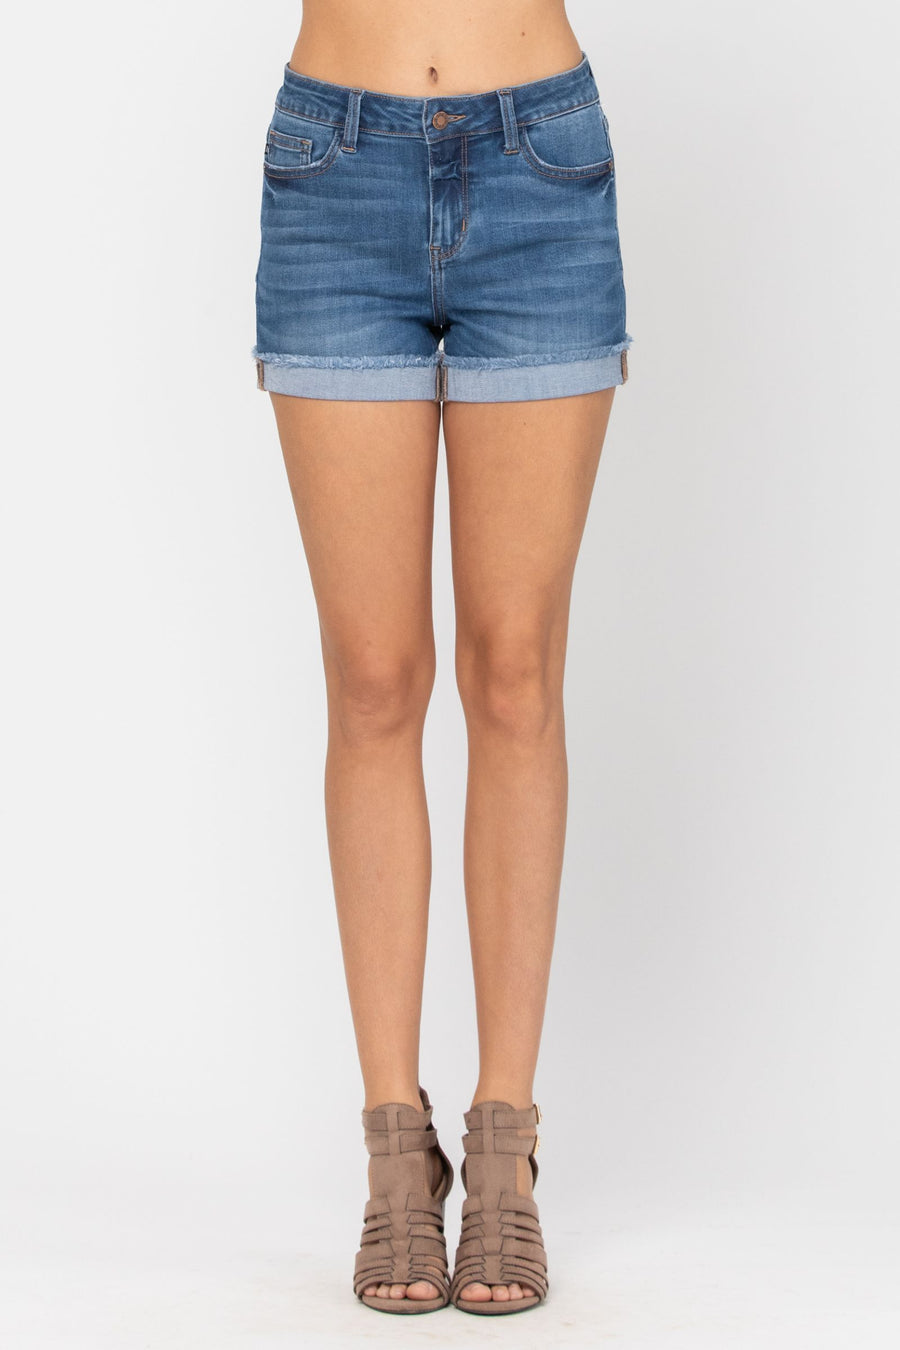 Judy Blue Cuffed Hem Shorts- 150038